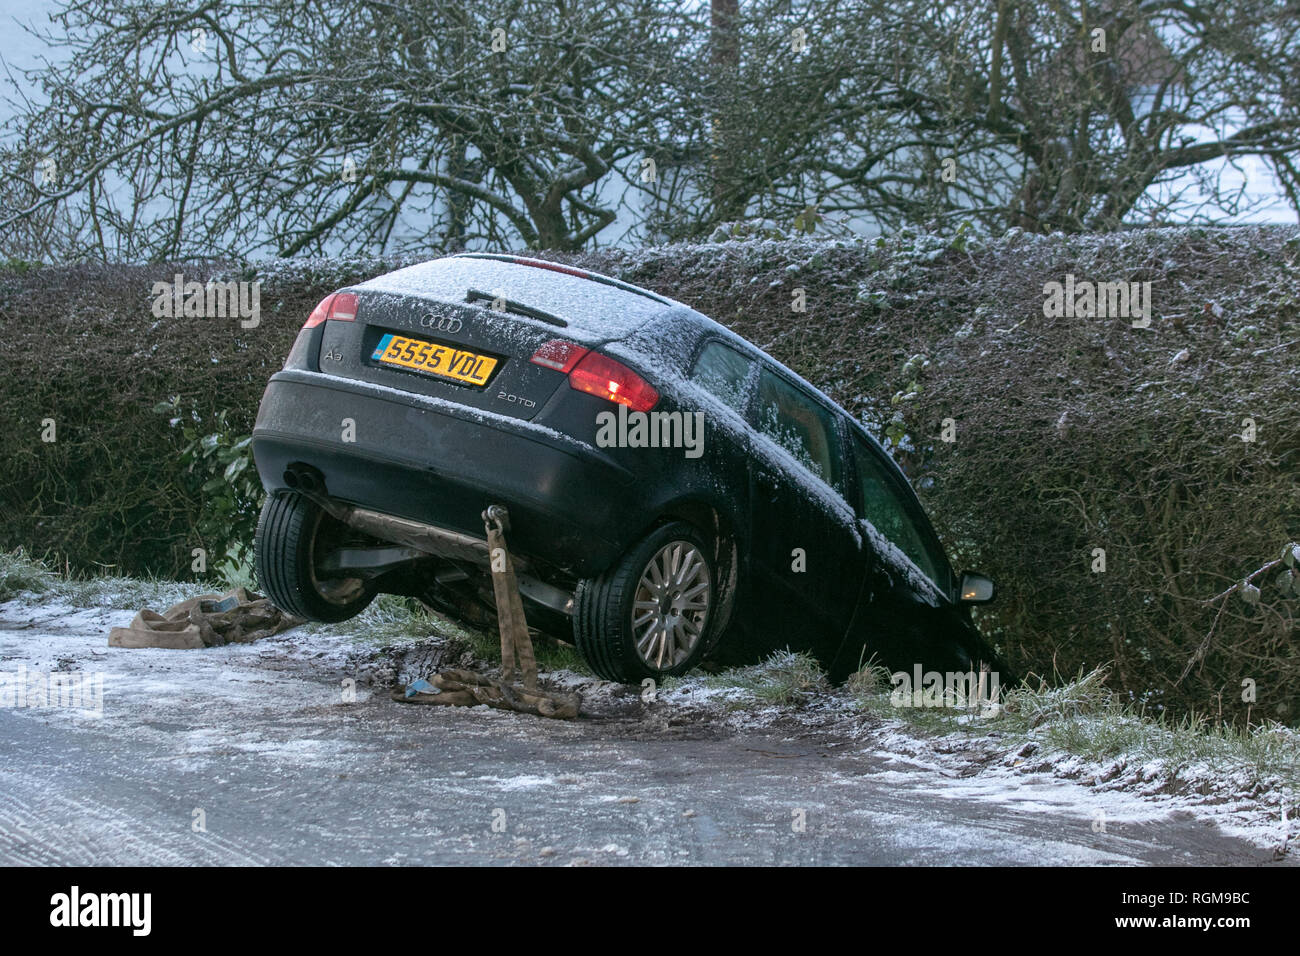 Rufford, Lancashire. 30th Jan, 2019. UK Weather. Cold, frosty, with light snow showers. The Met Office has issued a yellow weather warning across the majority of the UK as the area is braced for more snow and ice, with difficult driving conditions, icy surfaces and black ice on untreated roads. Credit. MediaWorldImages/AlamyLiveNews. - Stock Image